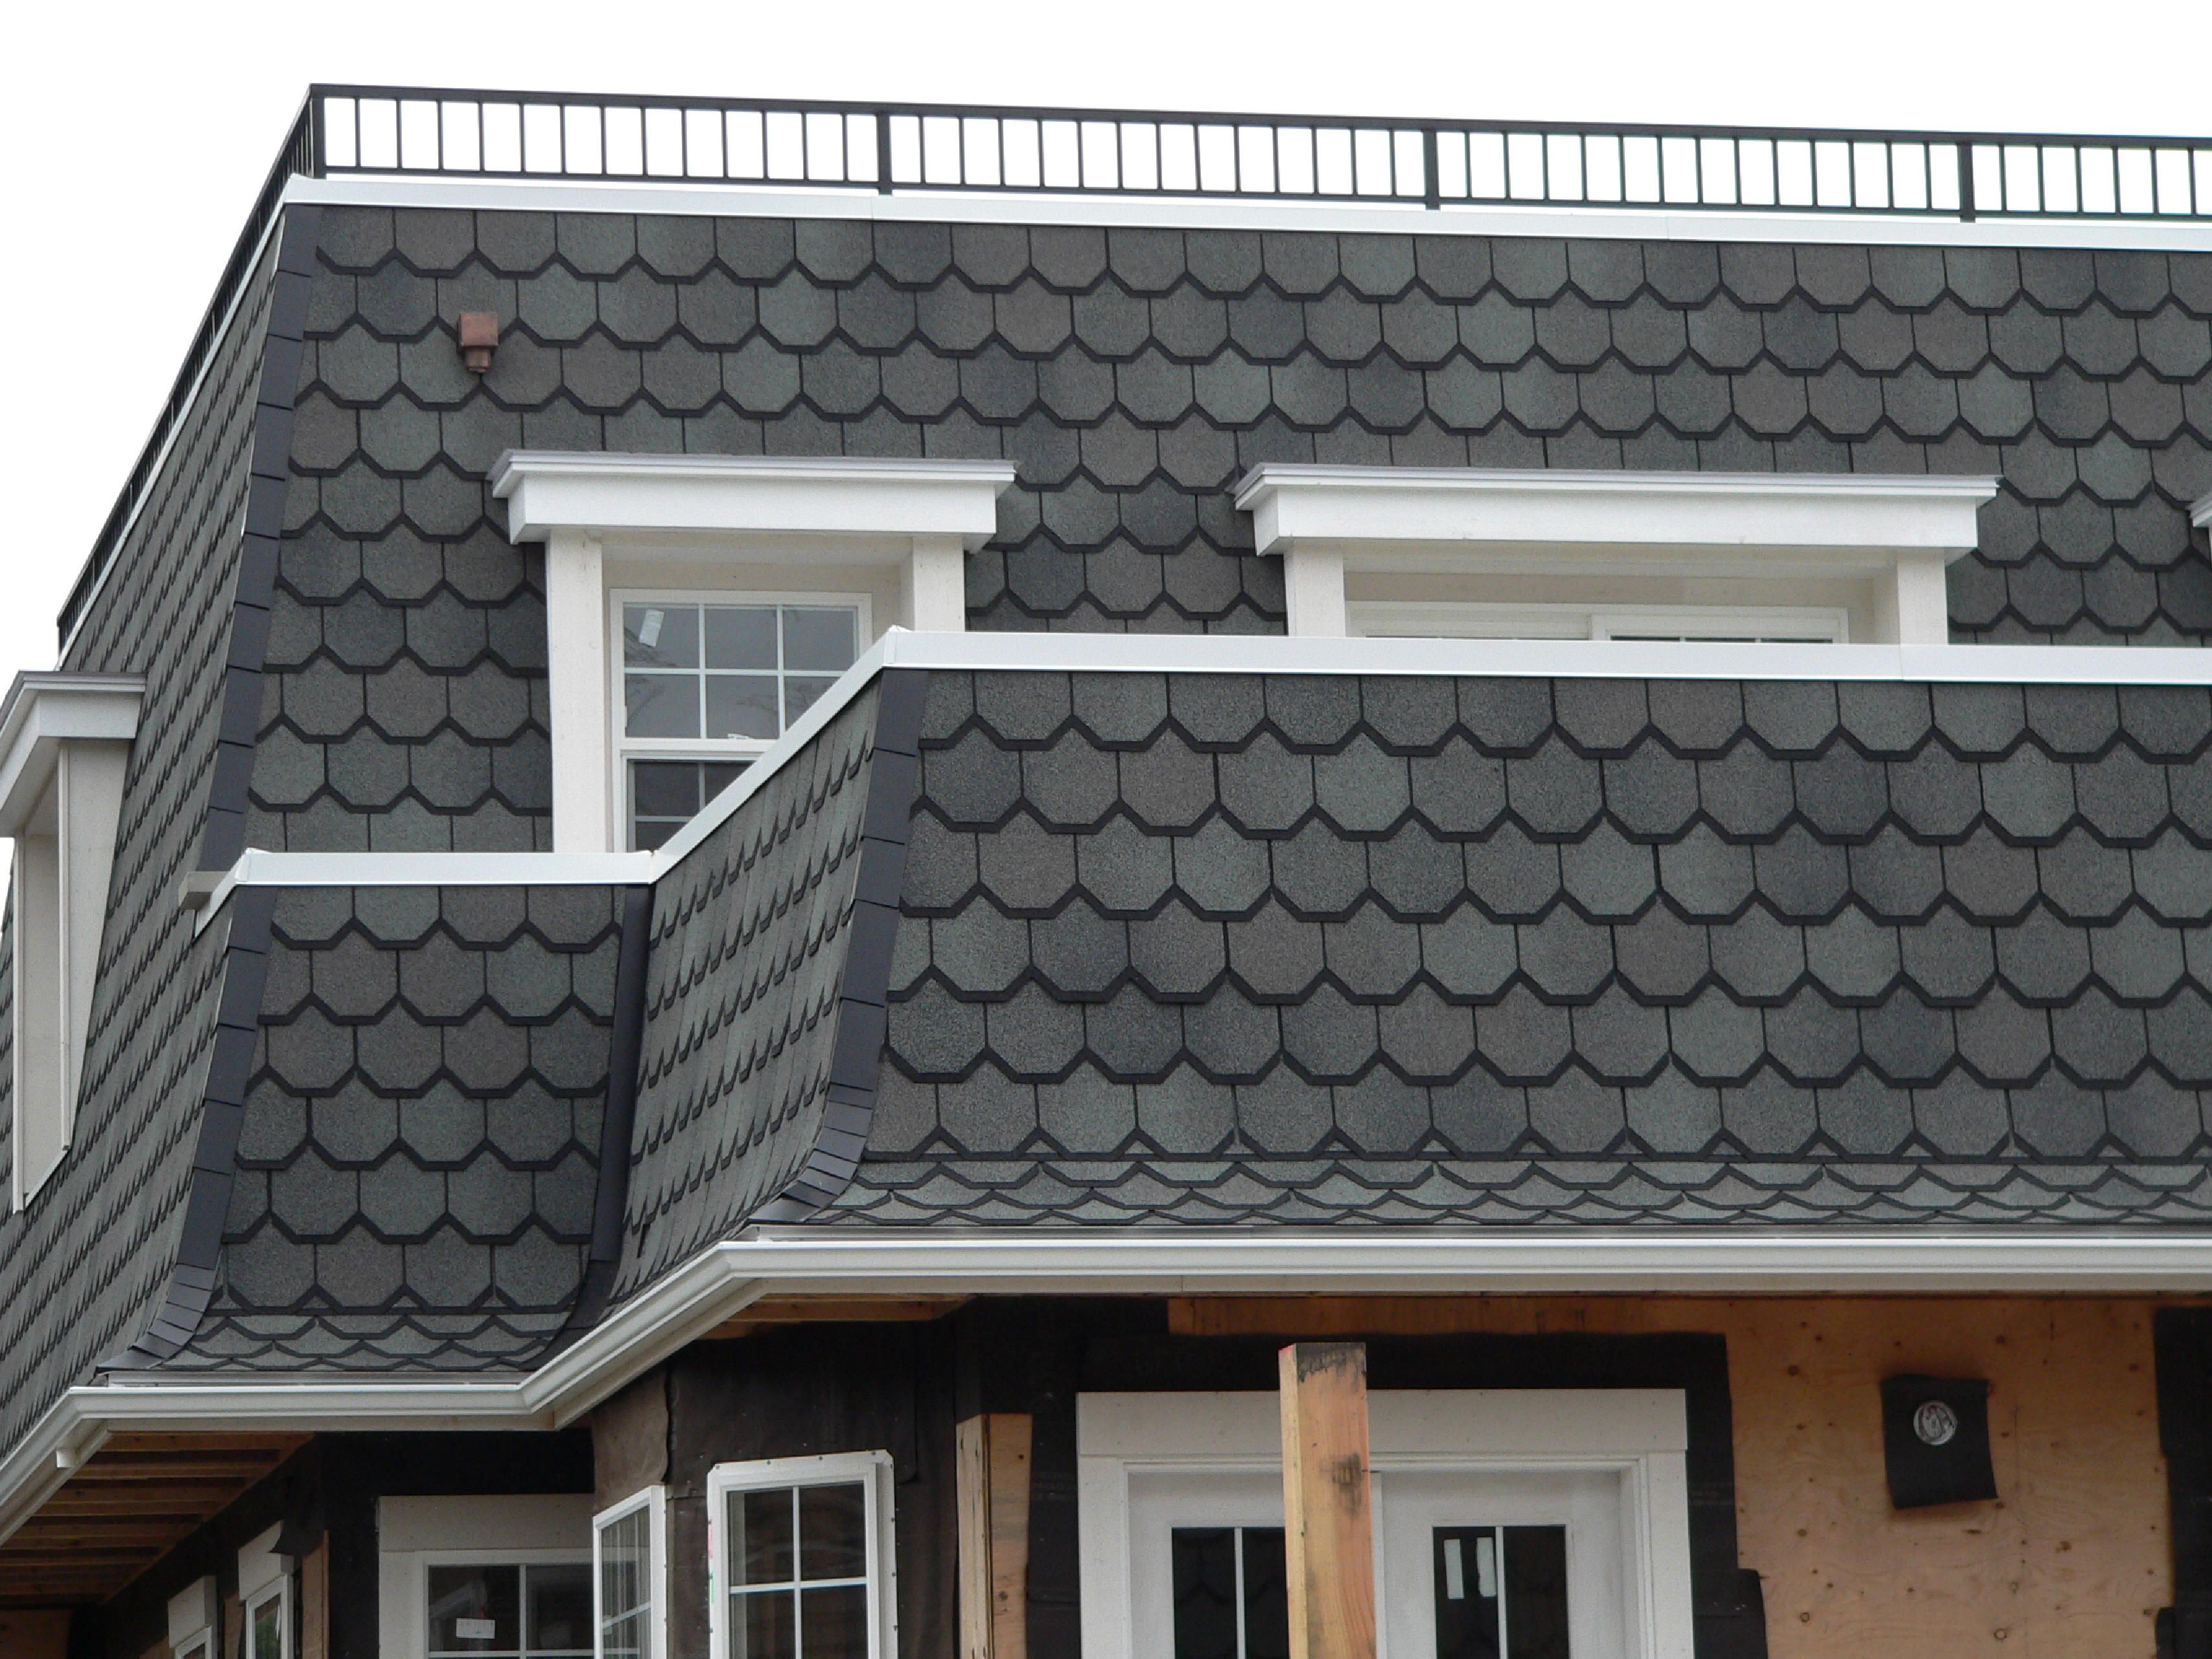 Carriage House Shingles Google Search Roofing Roof Trim House Roof Shingles